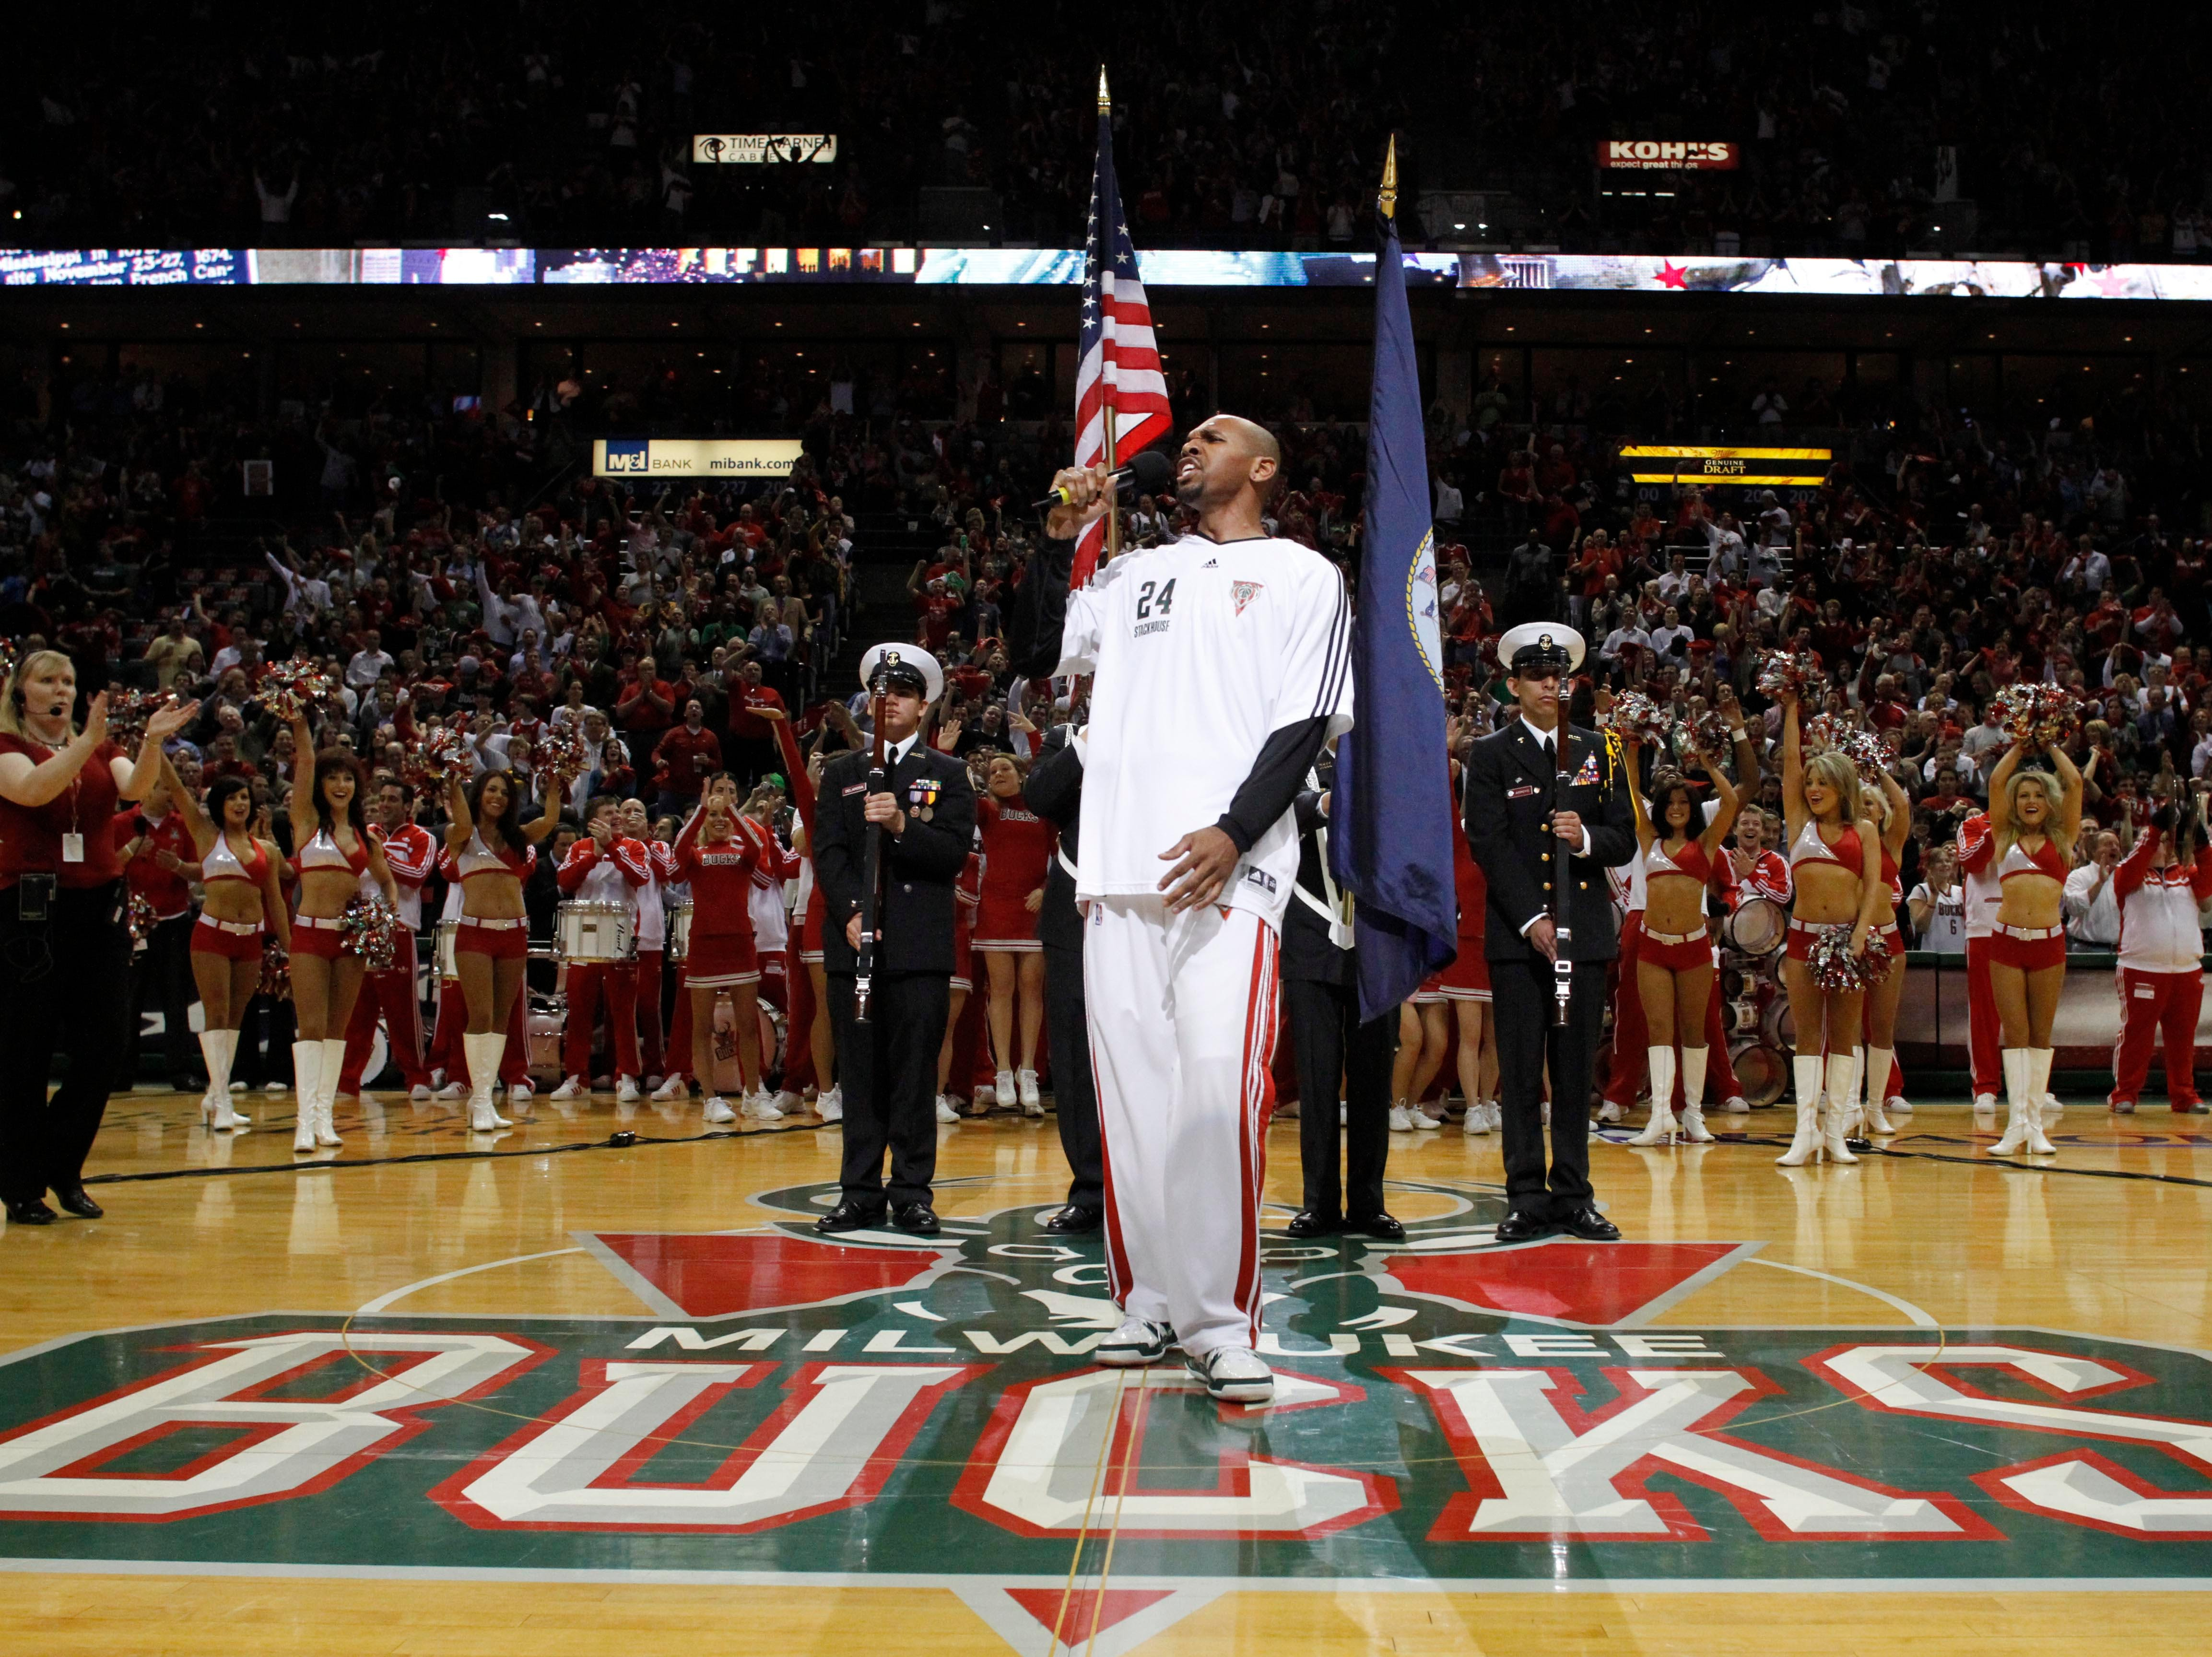 Milwaukee Bucks' Jerry Stackhouse, foreground, sings the national anthem at the start of Game 6 of a first-round basketball playoff series against the Atlanta Hawks on Friday, April 30, 2010, in Milwaukee.